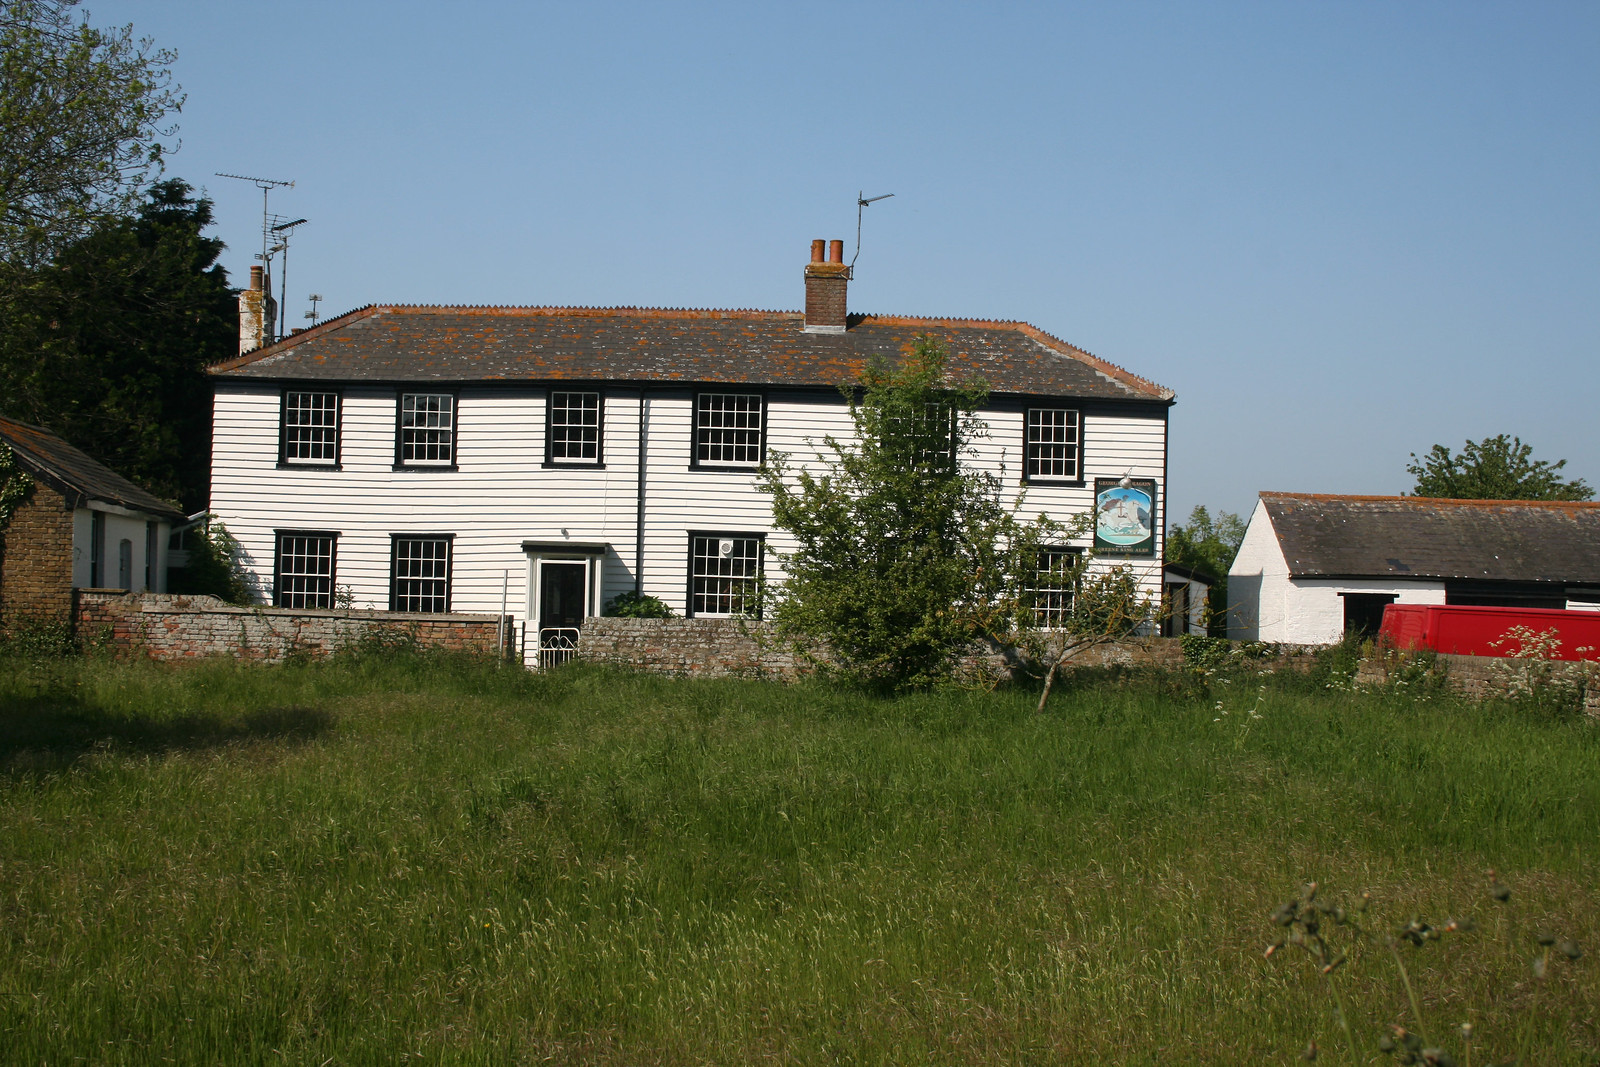 The former George and Dragon pub, Foulness Island The pub closed in 2007.